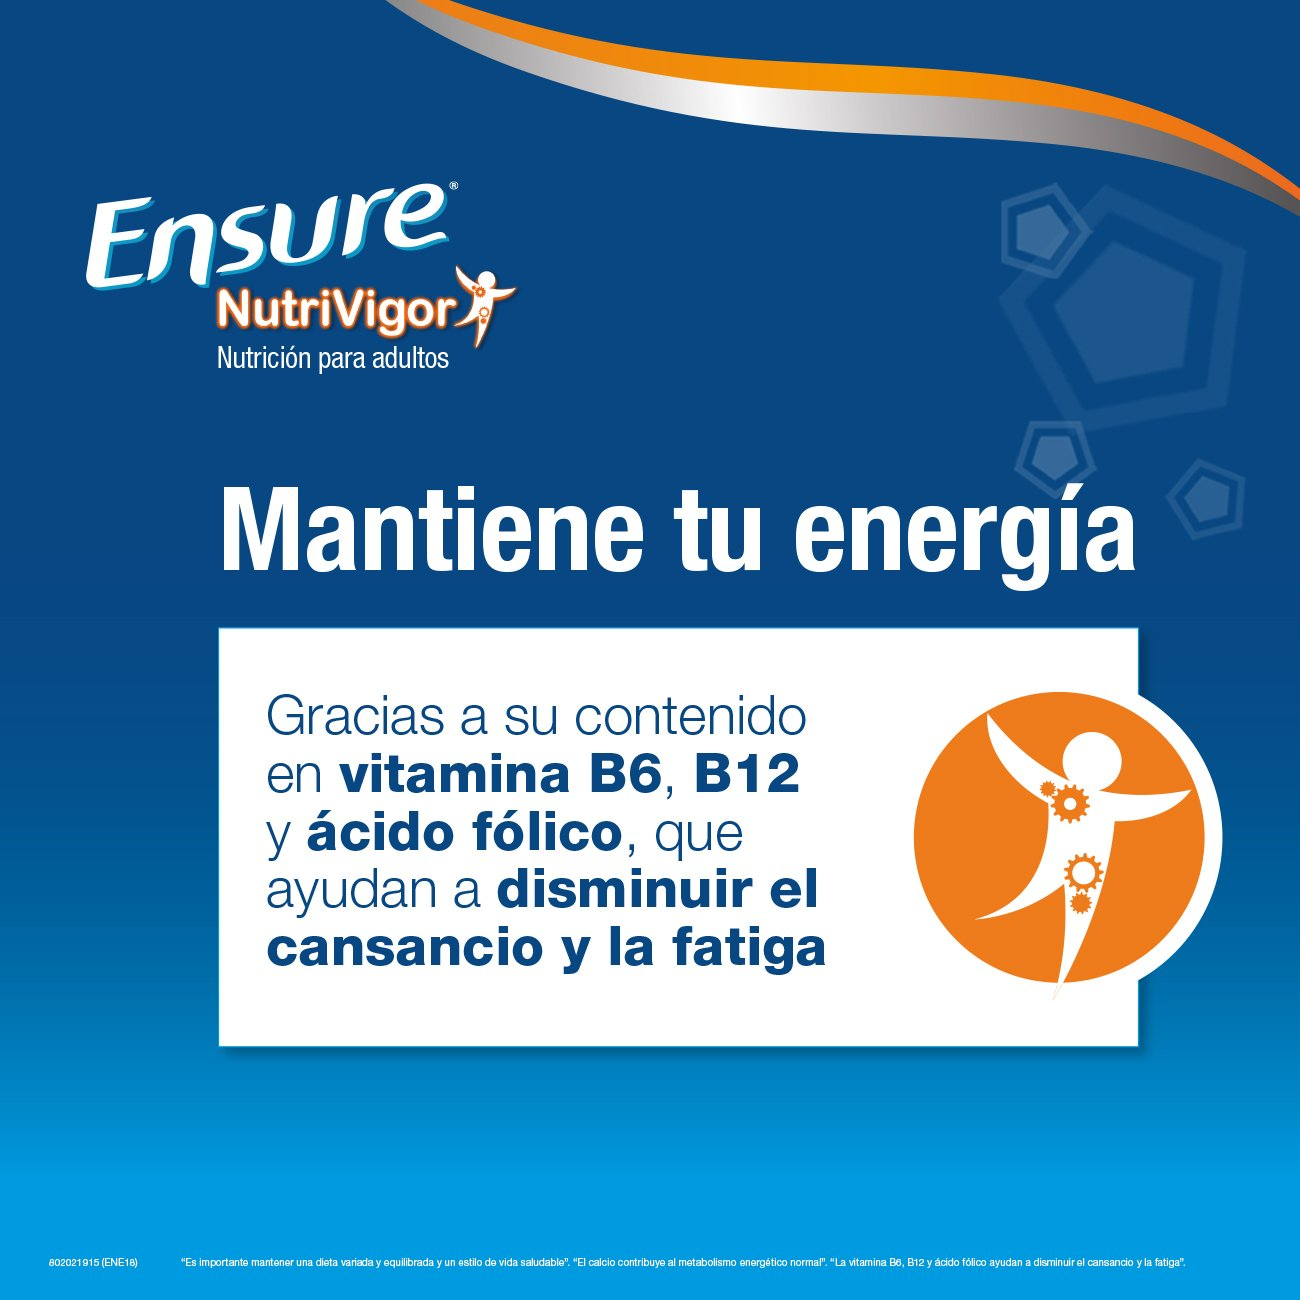 Amazon.com: Ensure NutriVigor Vanilla Food Supplement 4x220ml: Health & Personal Care